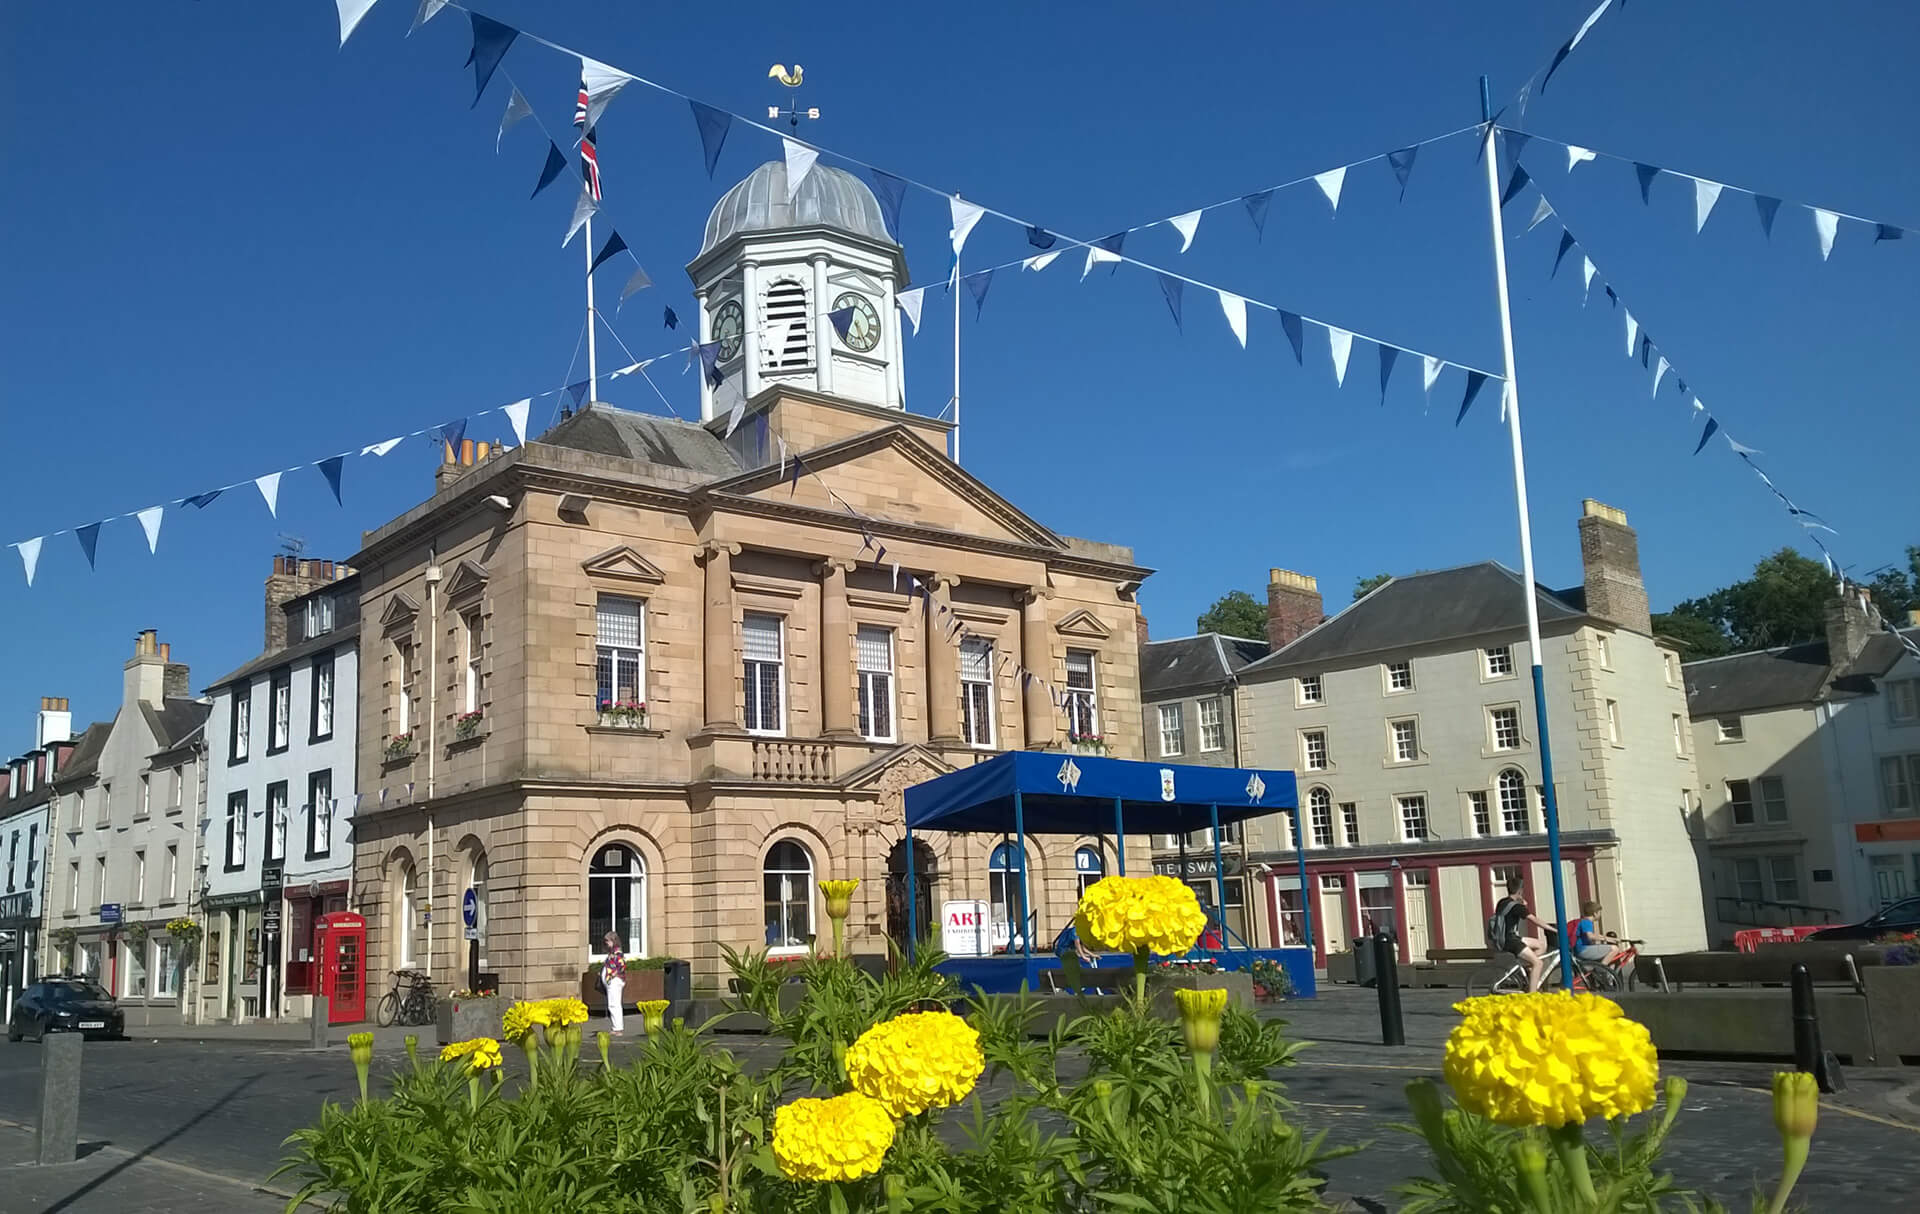 View of Kelso town hall with yellow flowers in the foreground.